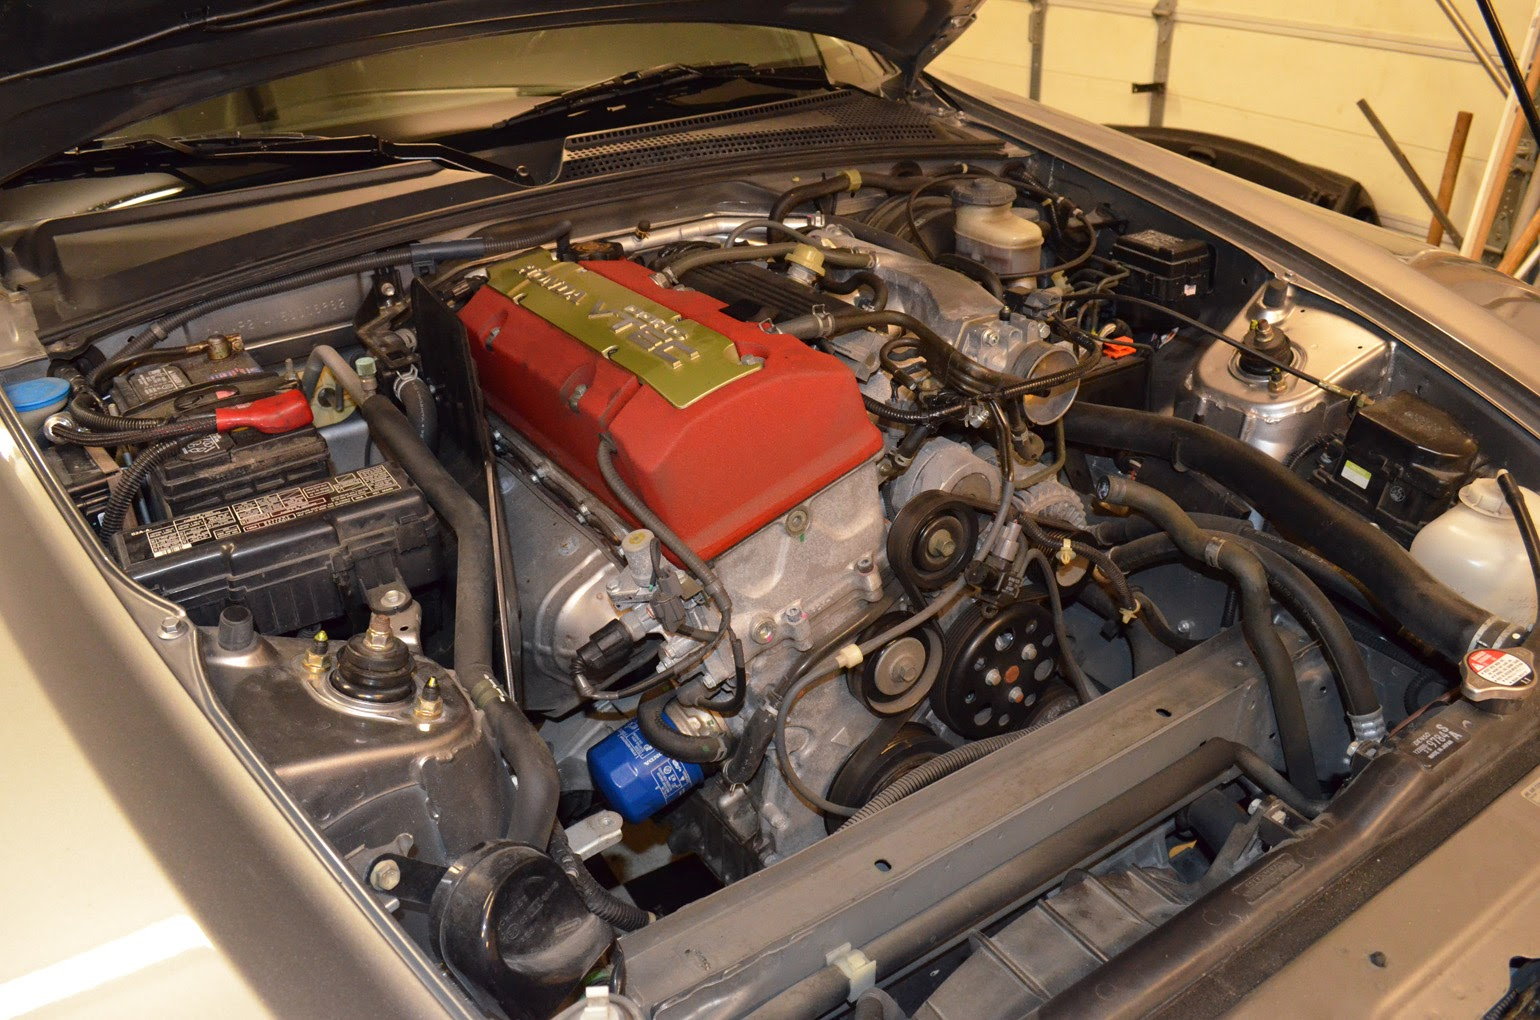 2005 Turbo Setup S2ki Honda S2000 Forums Car Fuse Box Short Battery And Fusebox Relocation Was Going To Make It Easier Locate The Not Worry As Much About Heat Power Steering Assist Stayed In